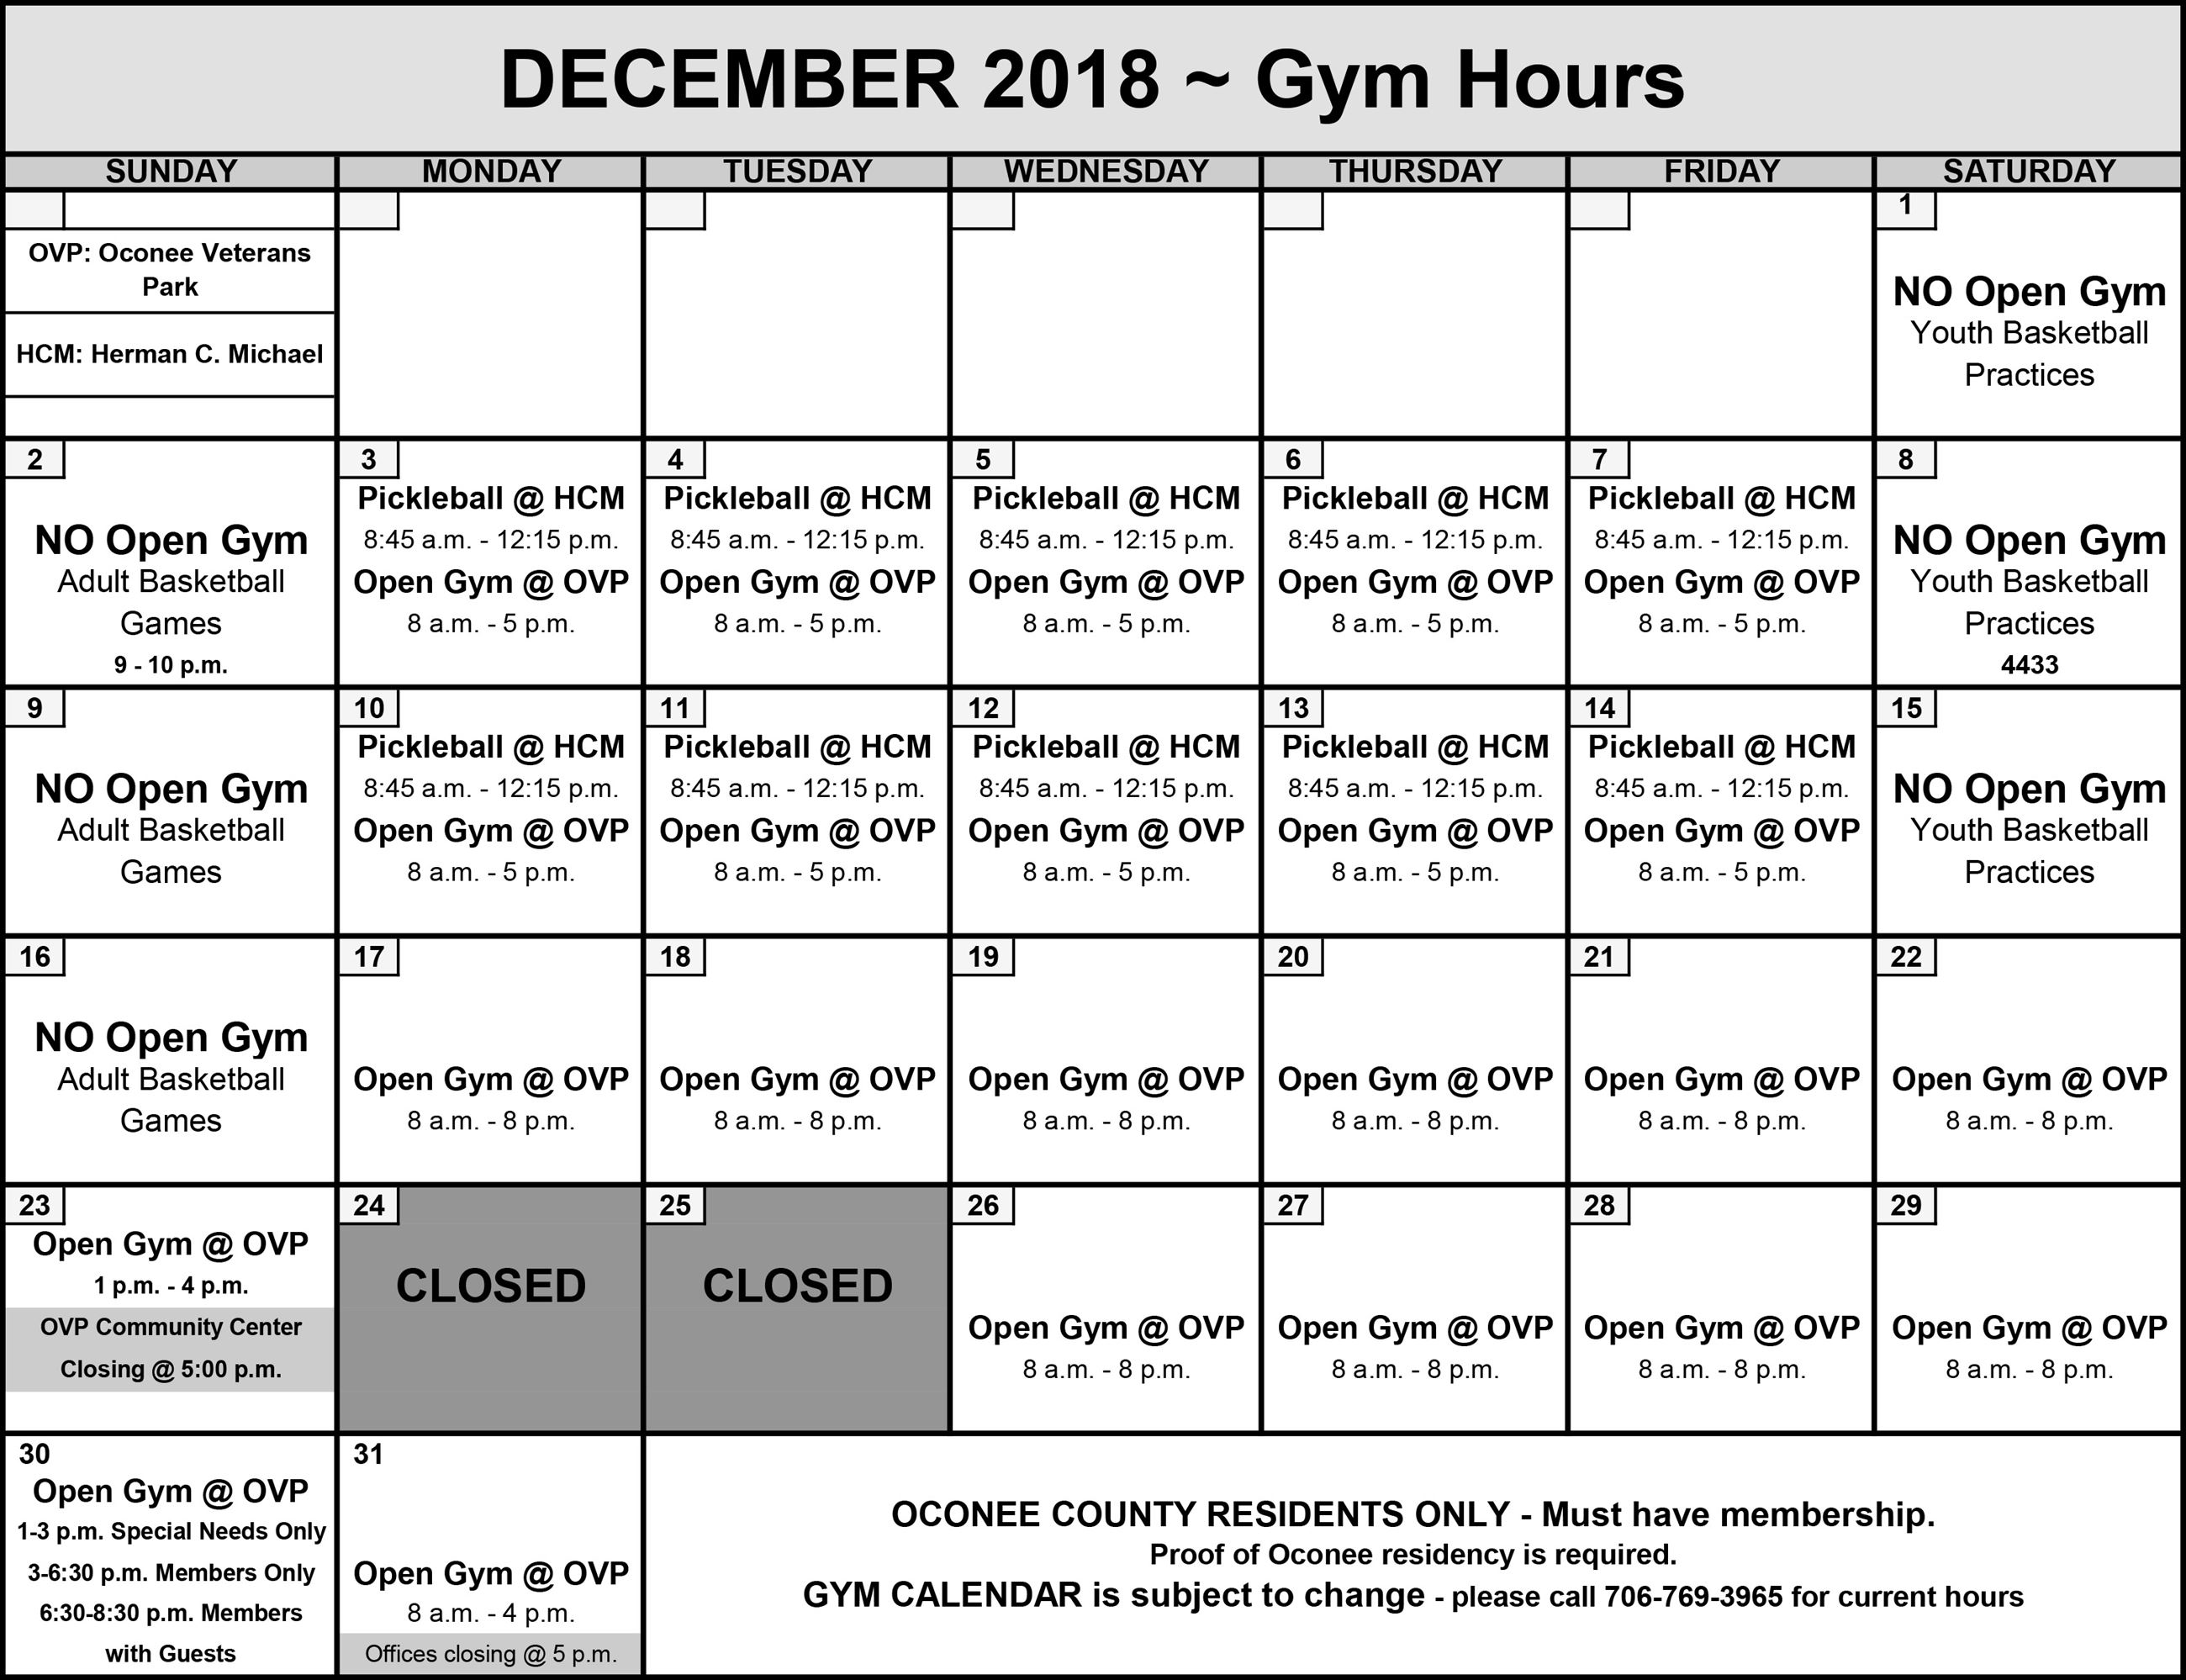 Dec.2018.Gym.Calendar Opens in new window